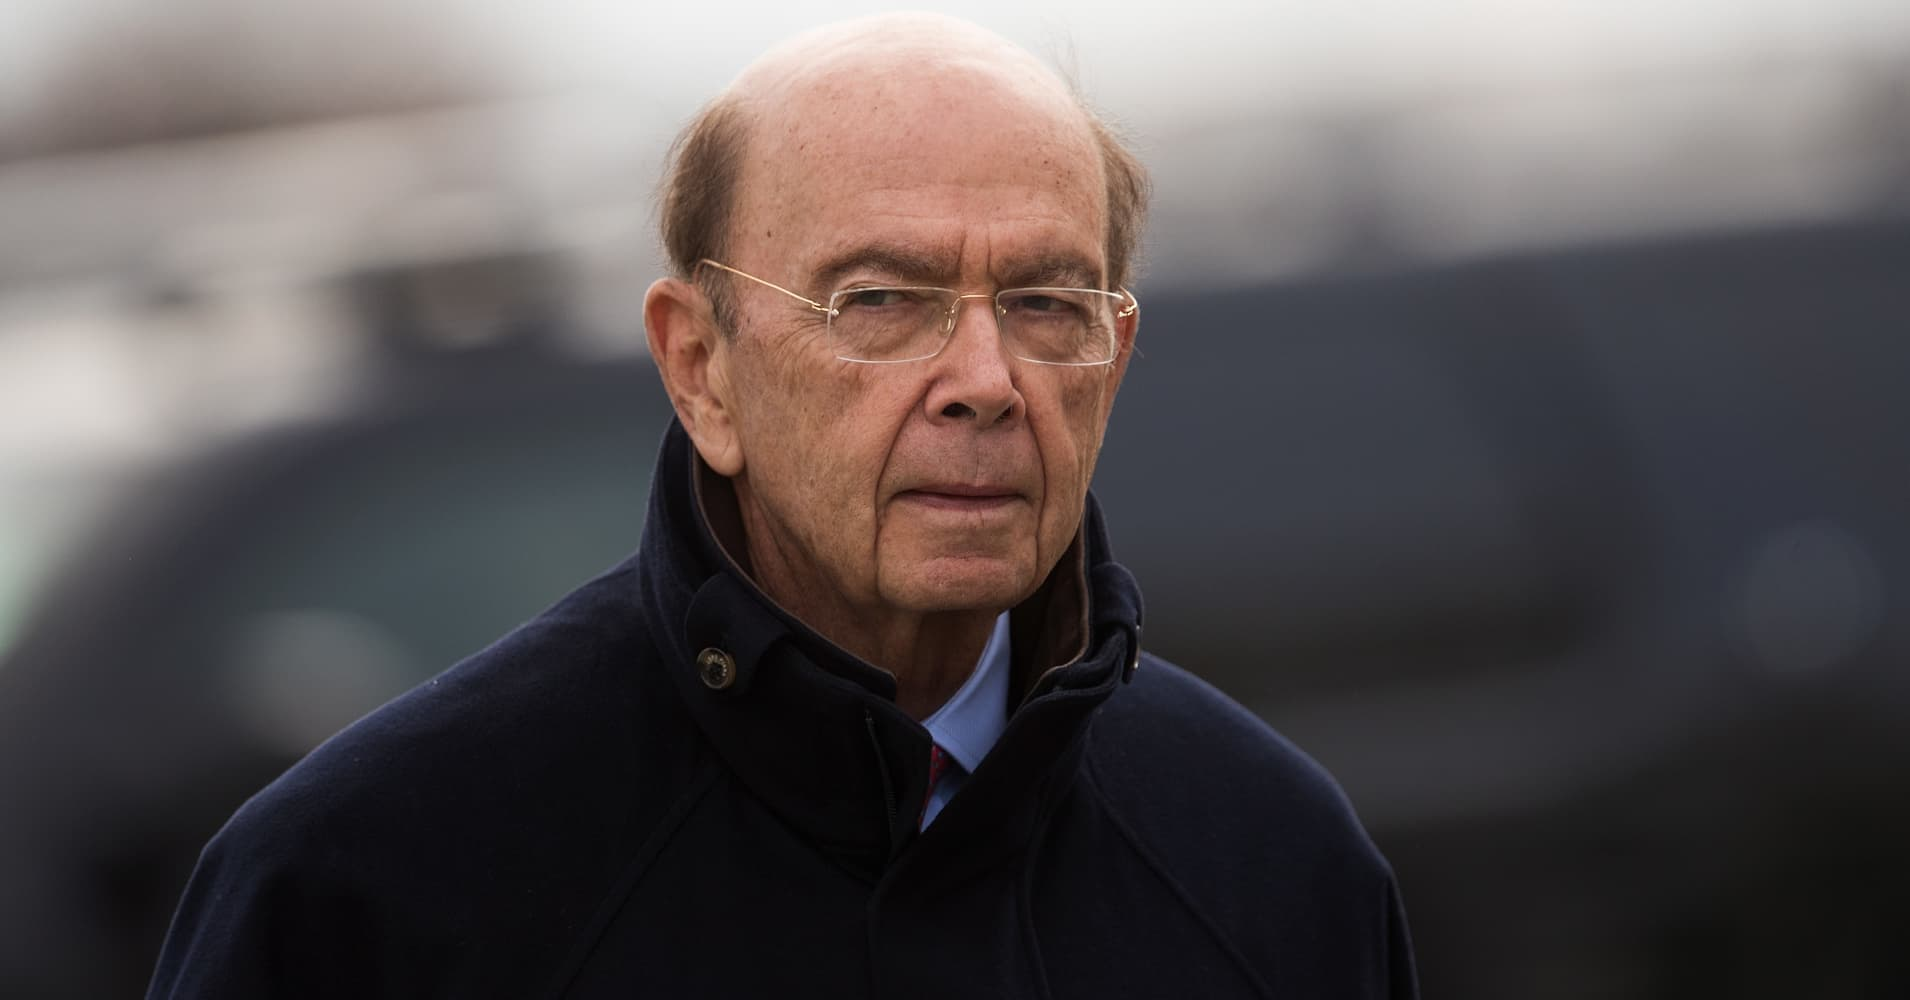 Commerce nominee Wilbur Ross: Unfair traders should be 'severely punished'